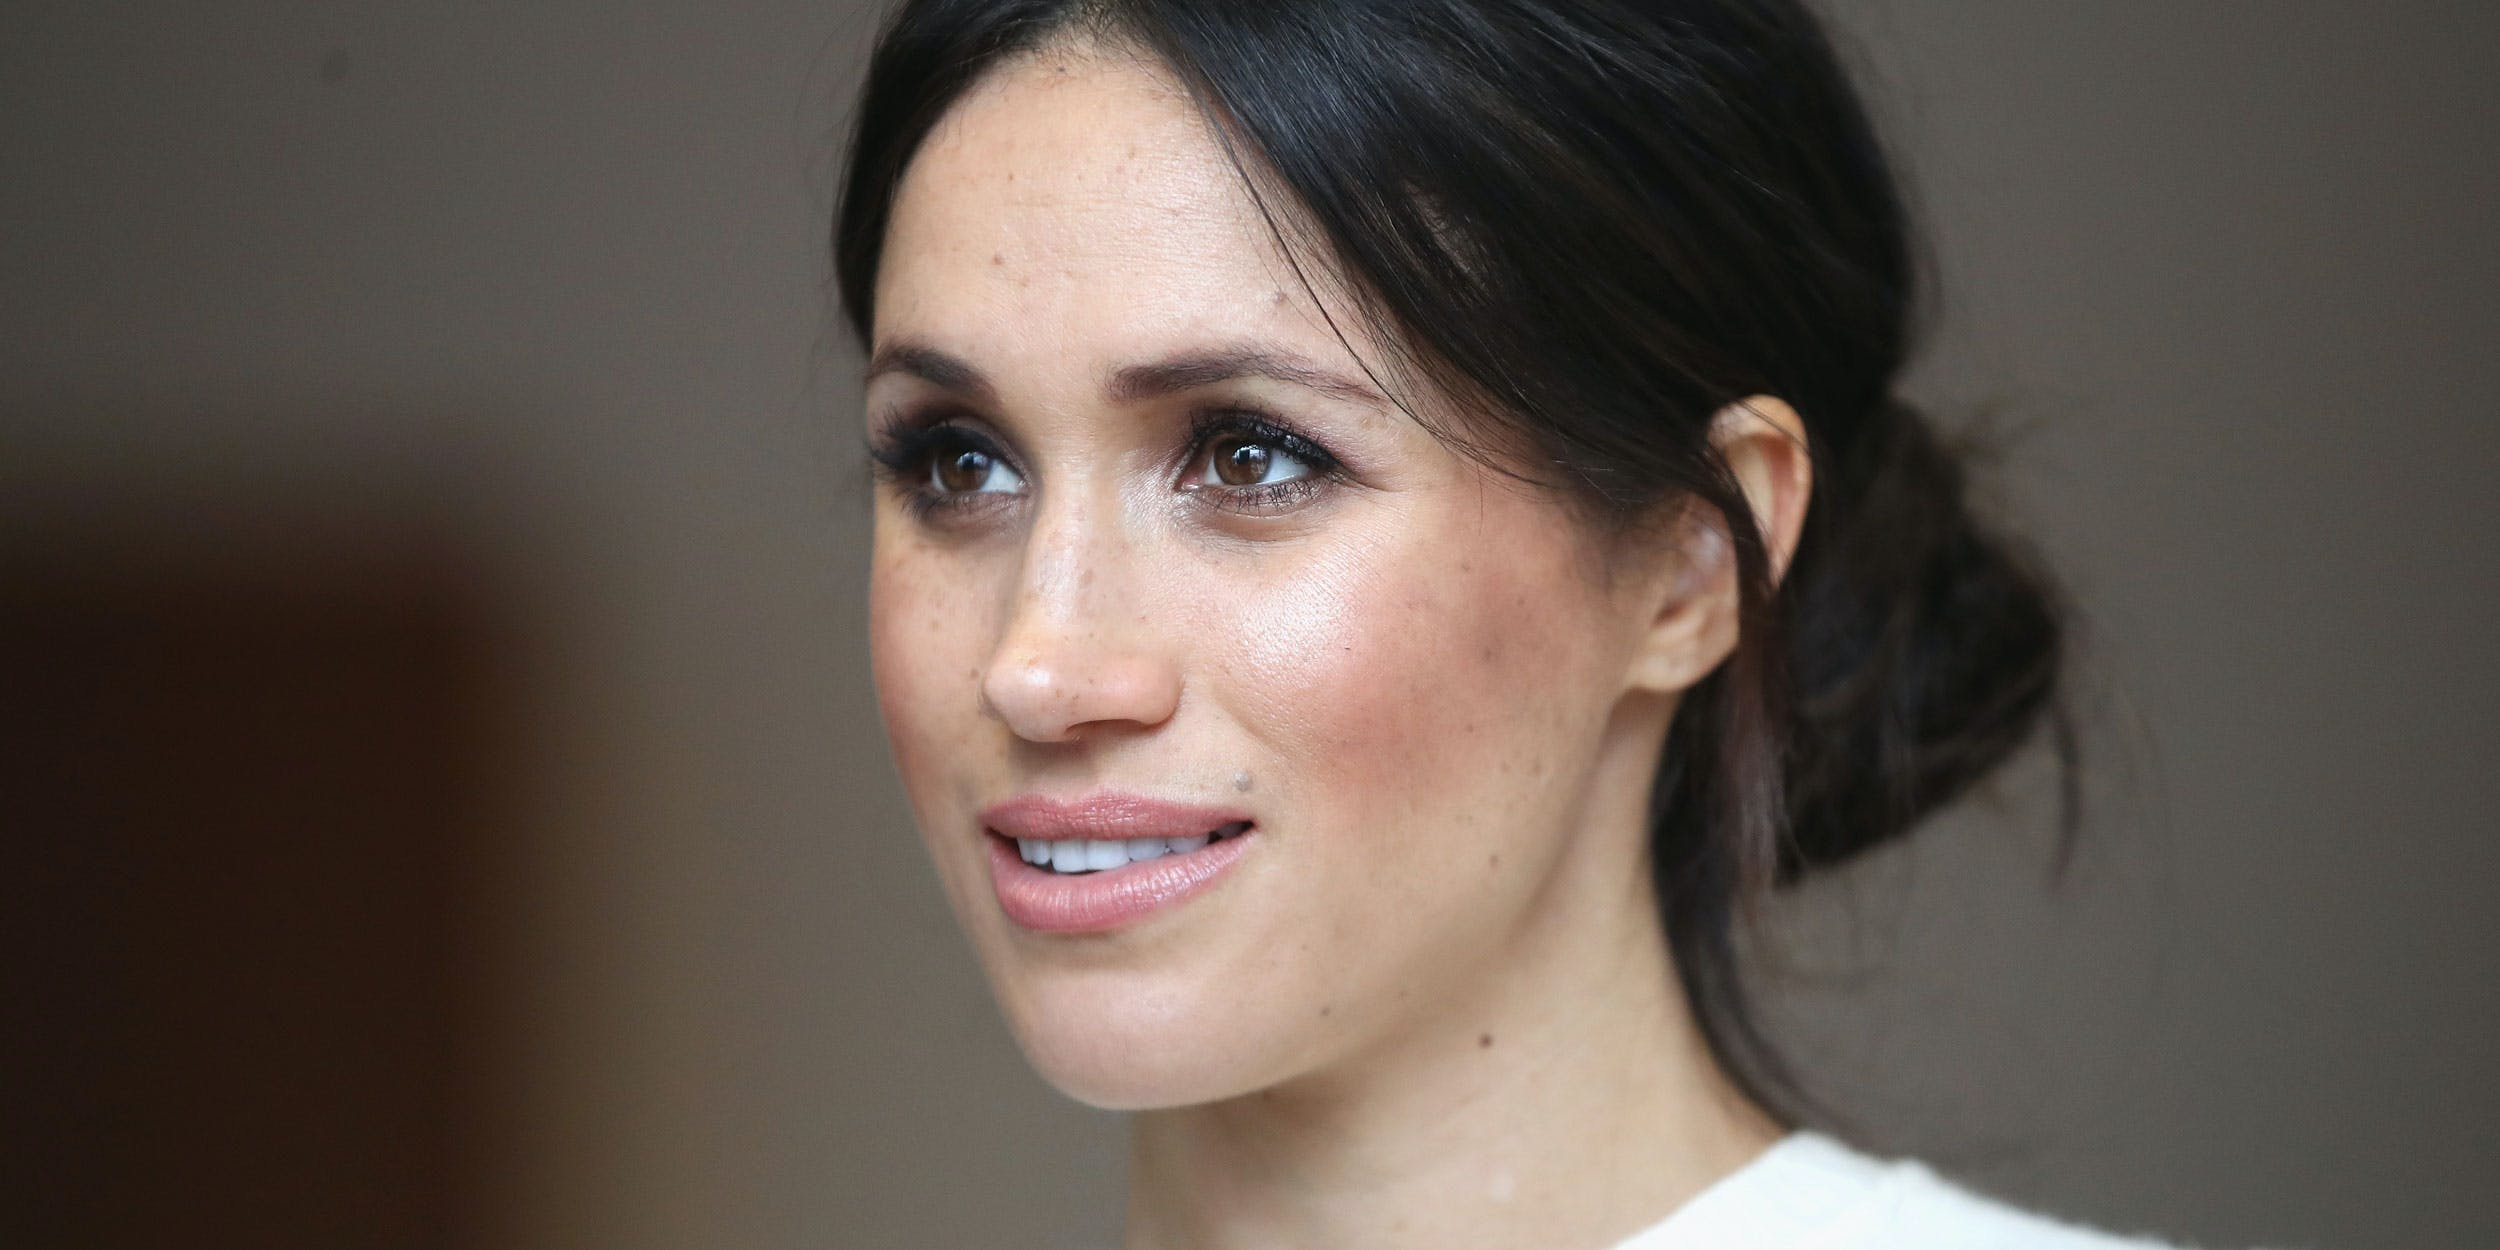 Meghan Markle visits Catalyst Inc, Northern Ireland, a next generation science park, to meet young entrepreneurs and innovators on March 23, 2018 in Belfast, Nothern Ireland. Markle's nephew, a cannabis farmer in Oregon, recently signed on with MTV for a cannabis show. The two don't have much of a relationship. (Photo by Pool/Samir Hussein/WireImage)